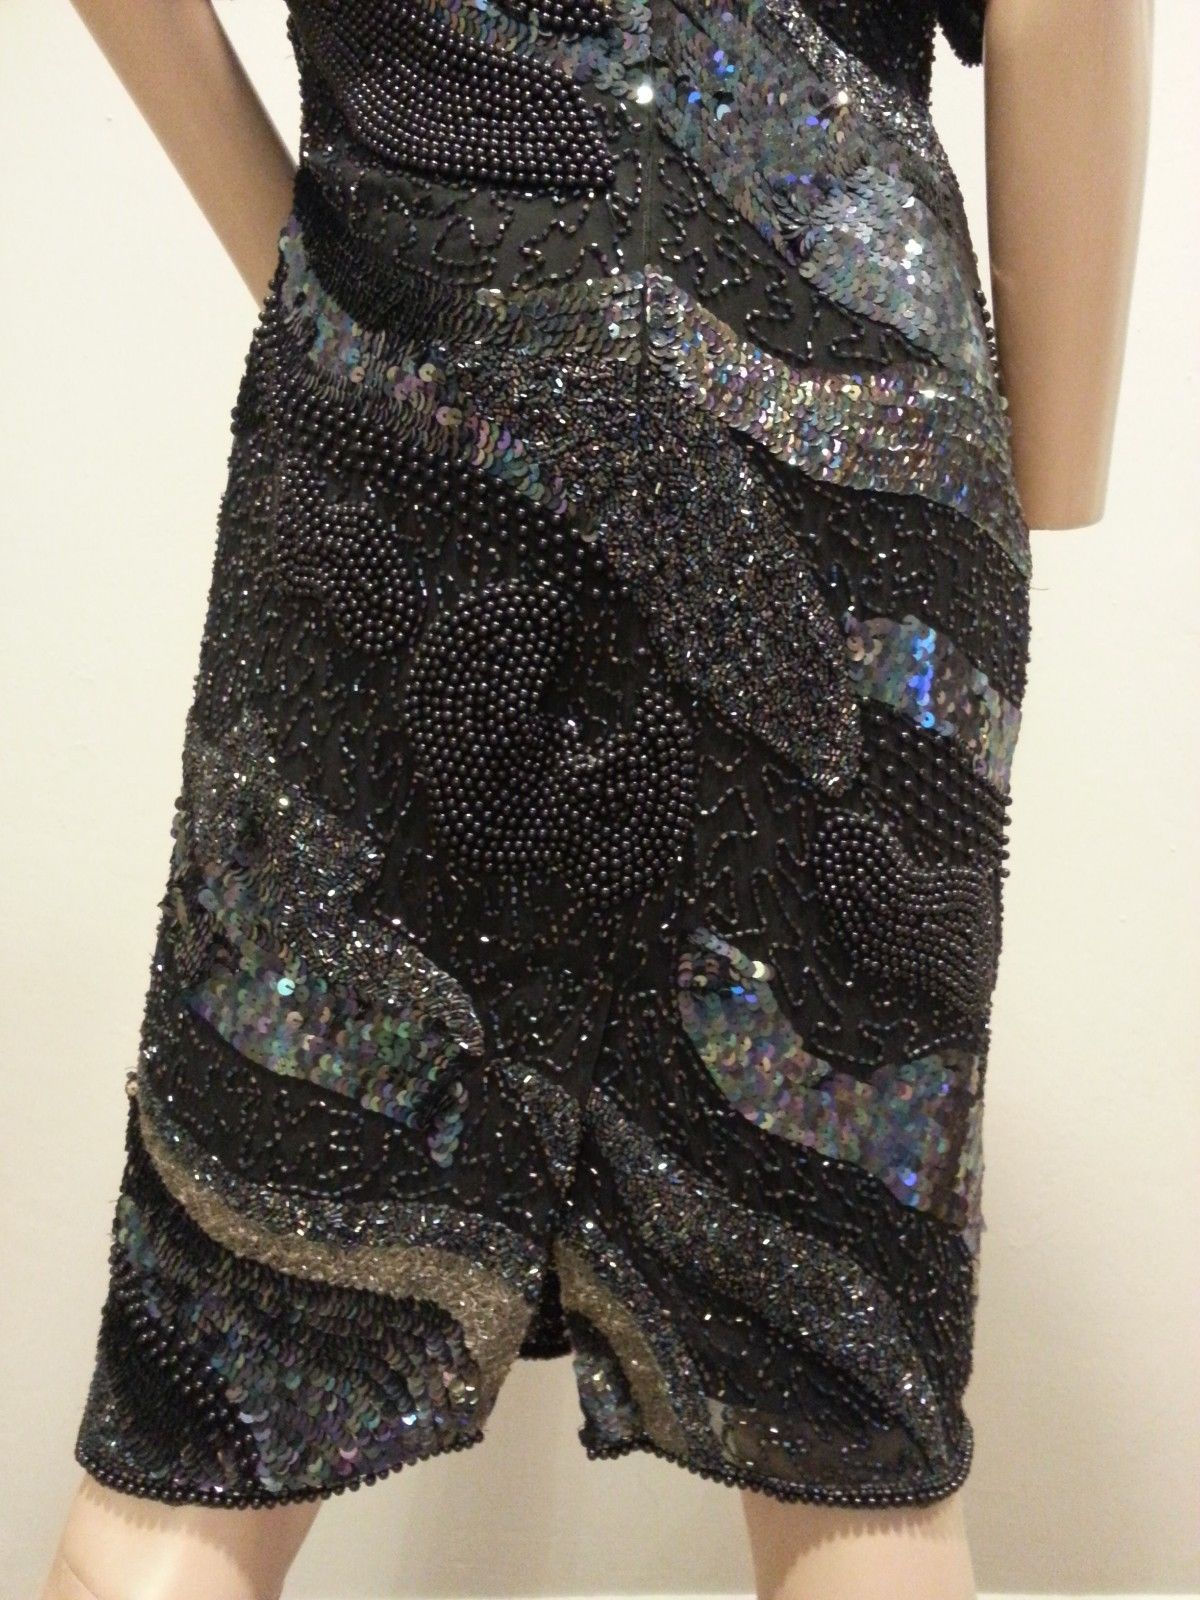 VTG Sequin Heavily Beaded Navy Black Silver Galaxy Space Silk Trophy Dress 8